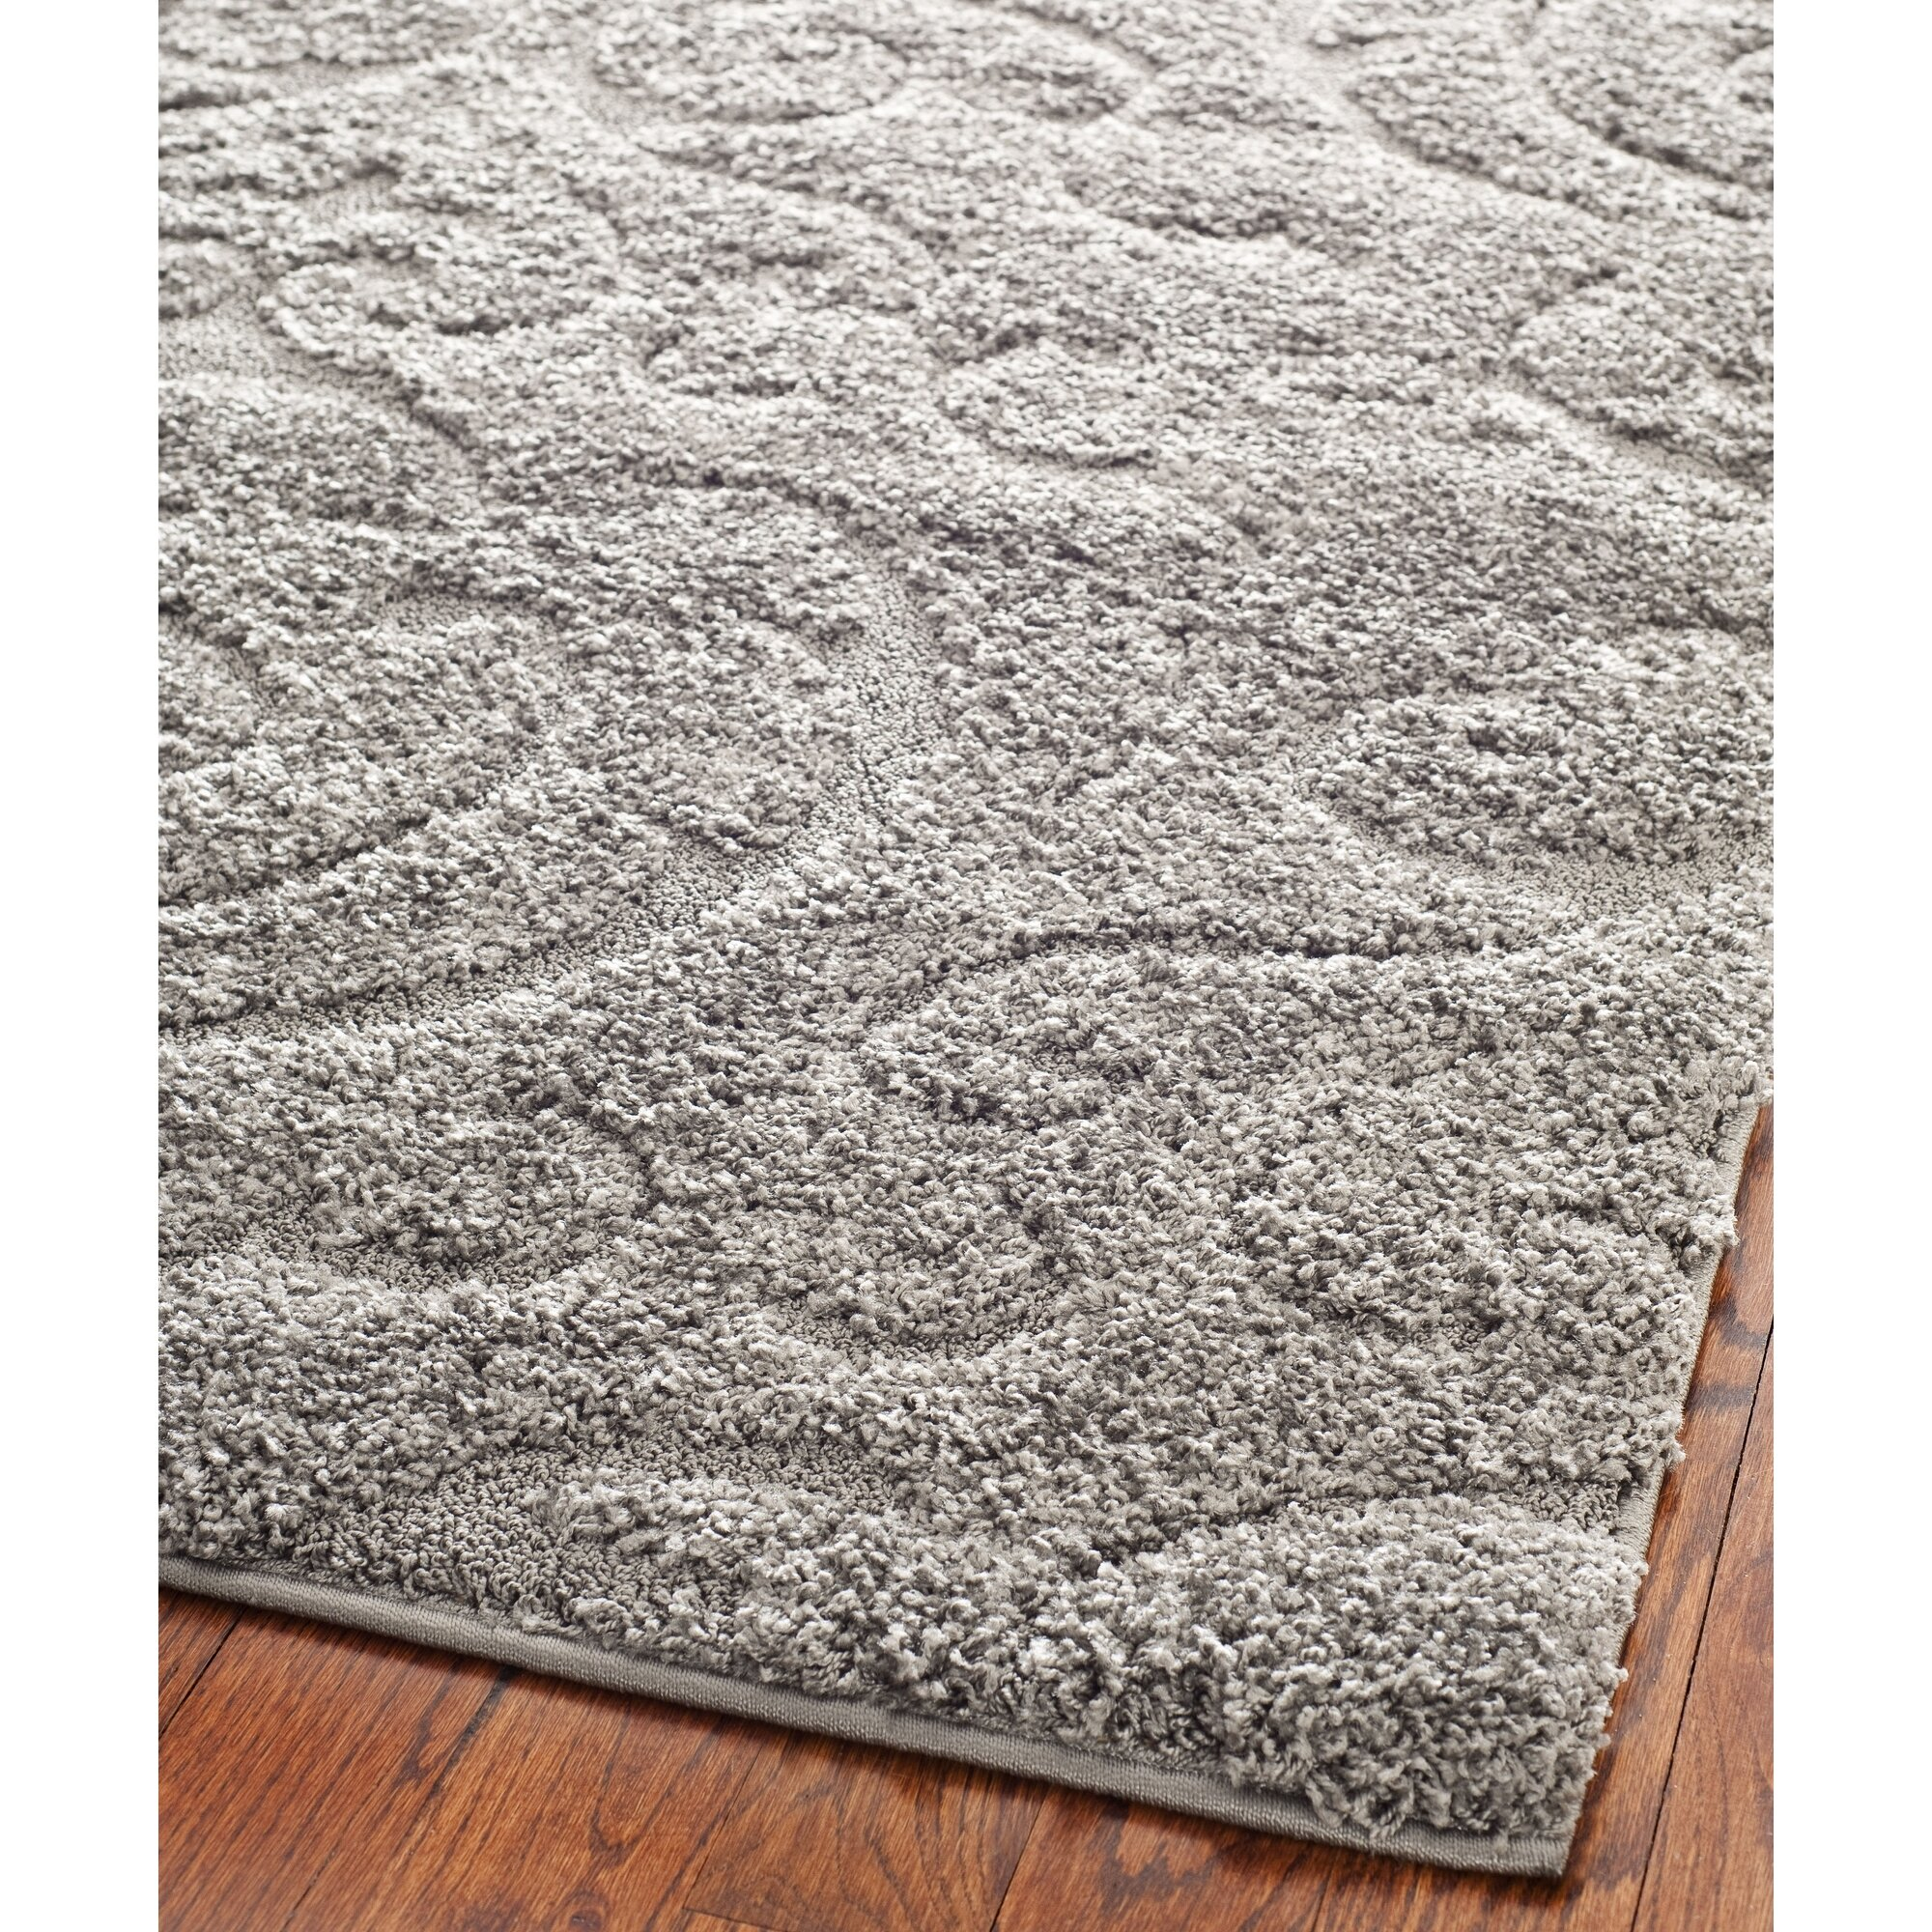 Florida shag light gray beige area rug wayfair Gray shag rug